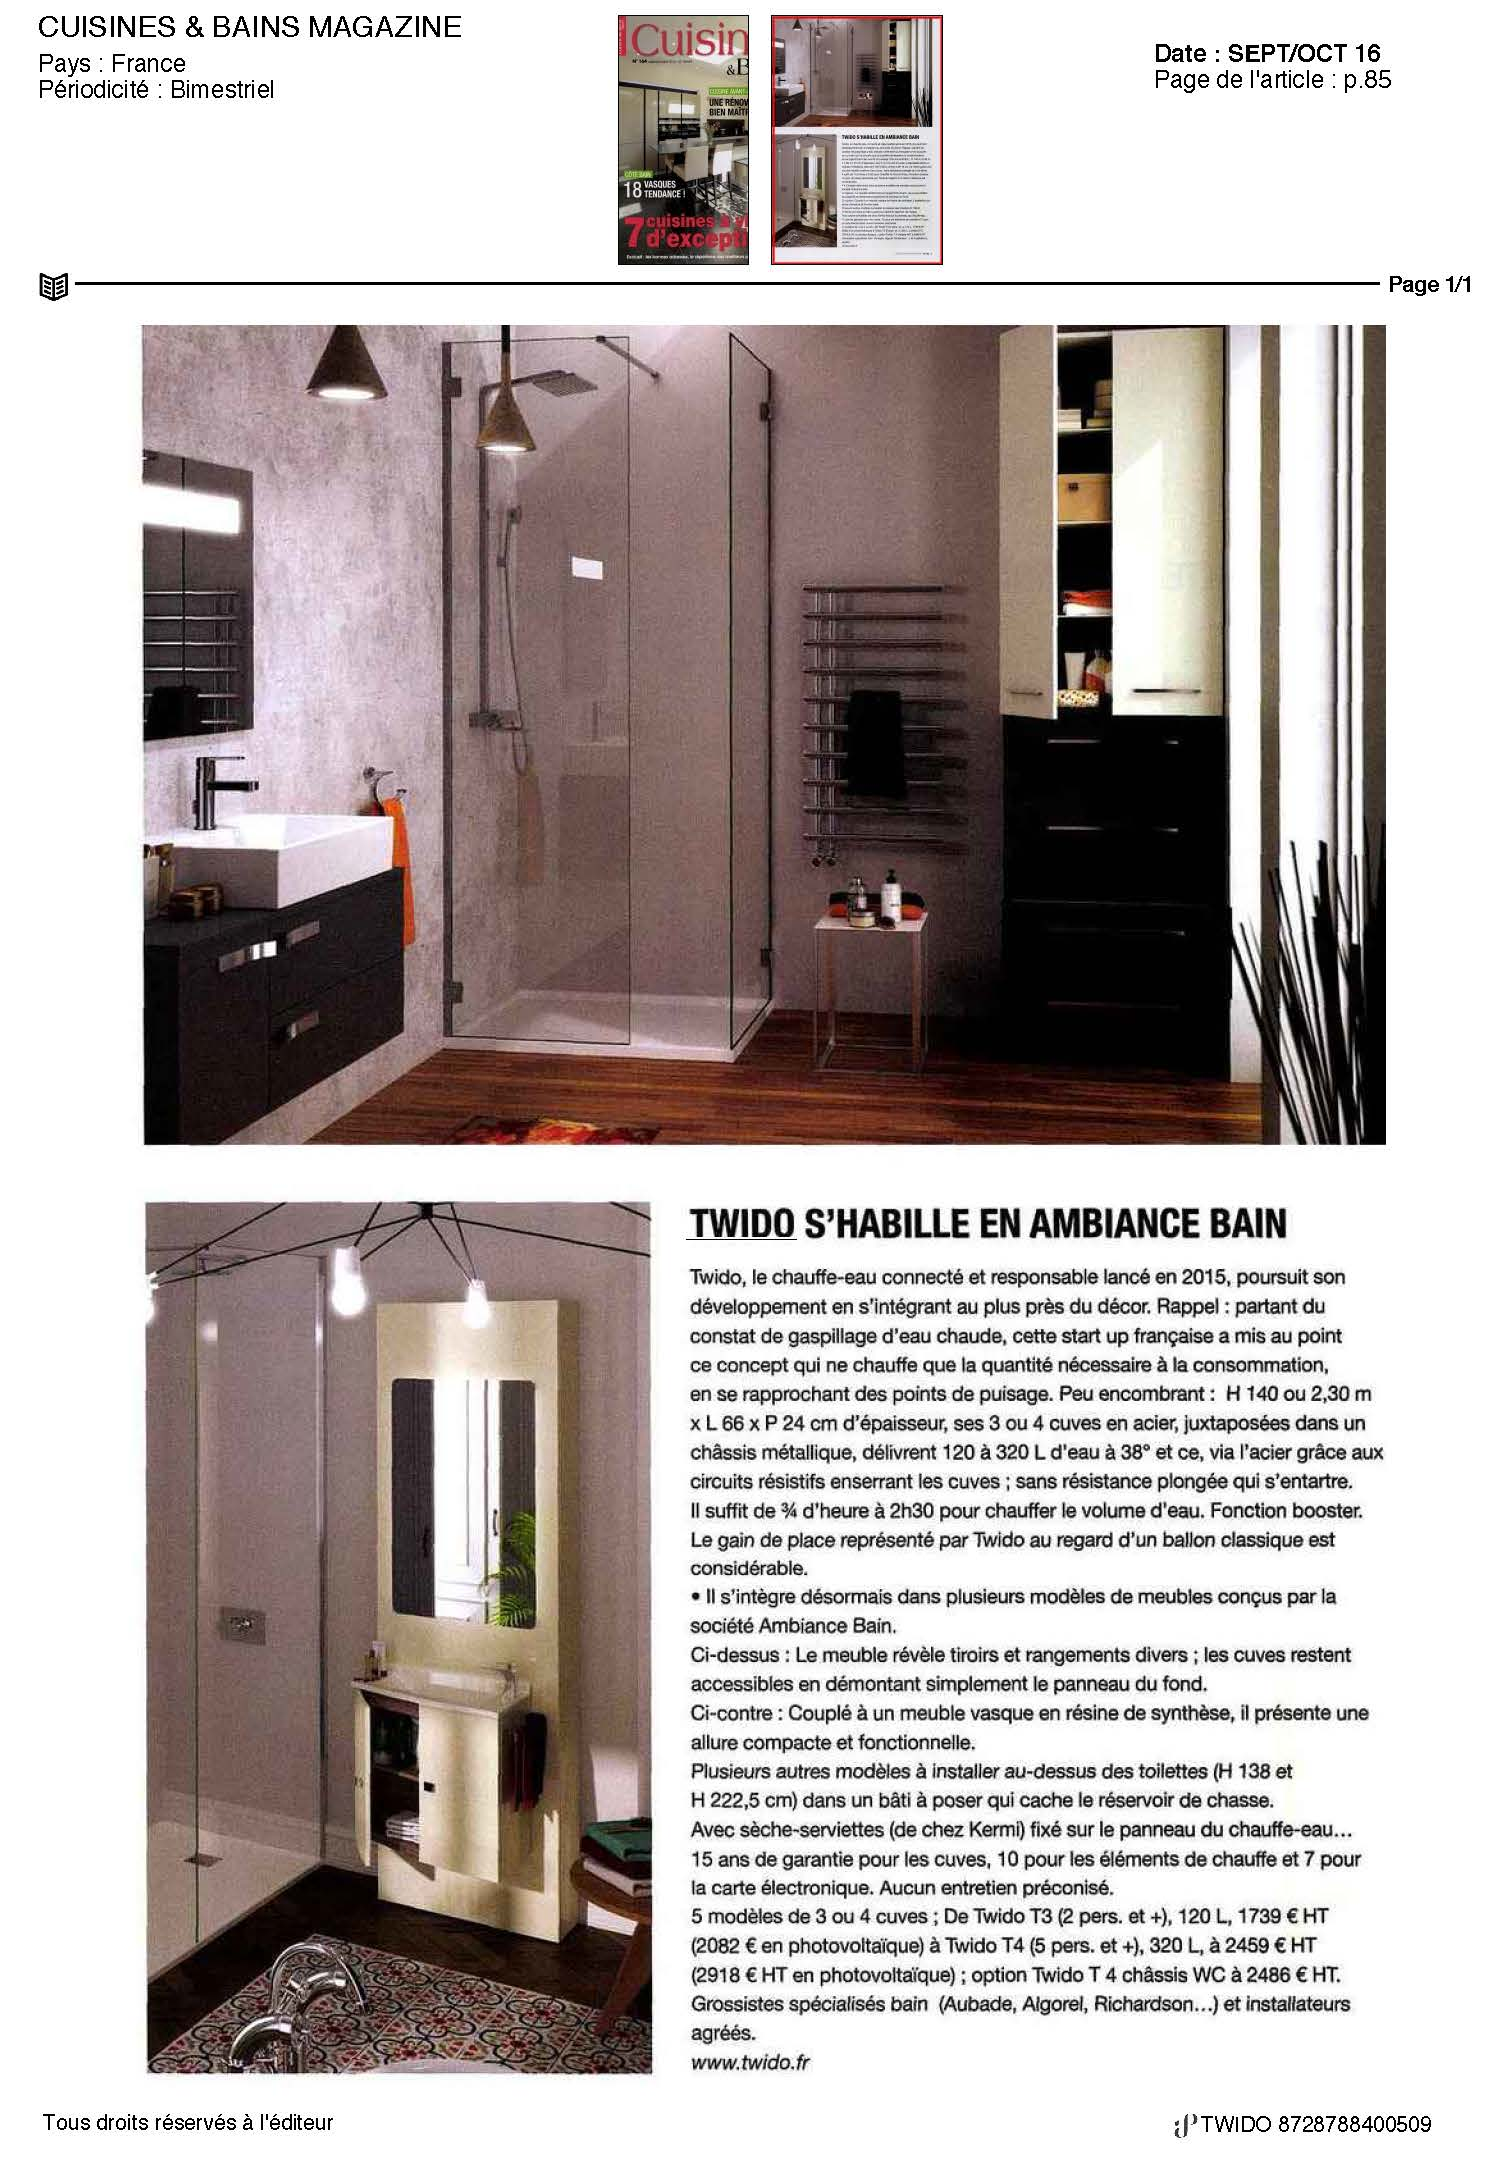 twido dans cuisines bains magazine. Black Bedroom Furniture Sets. Home Design Ideas